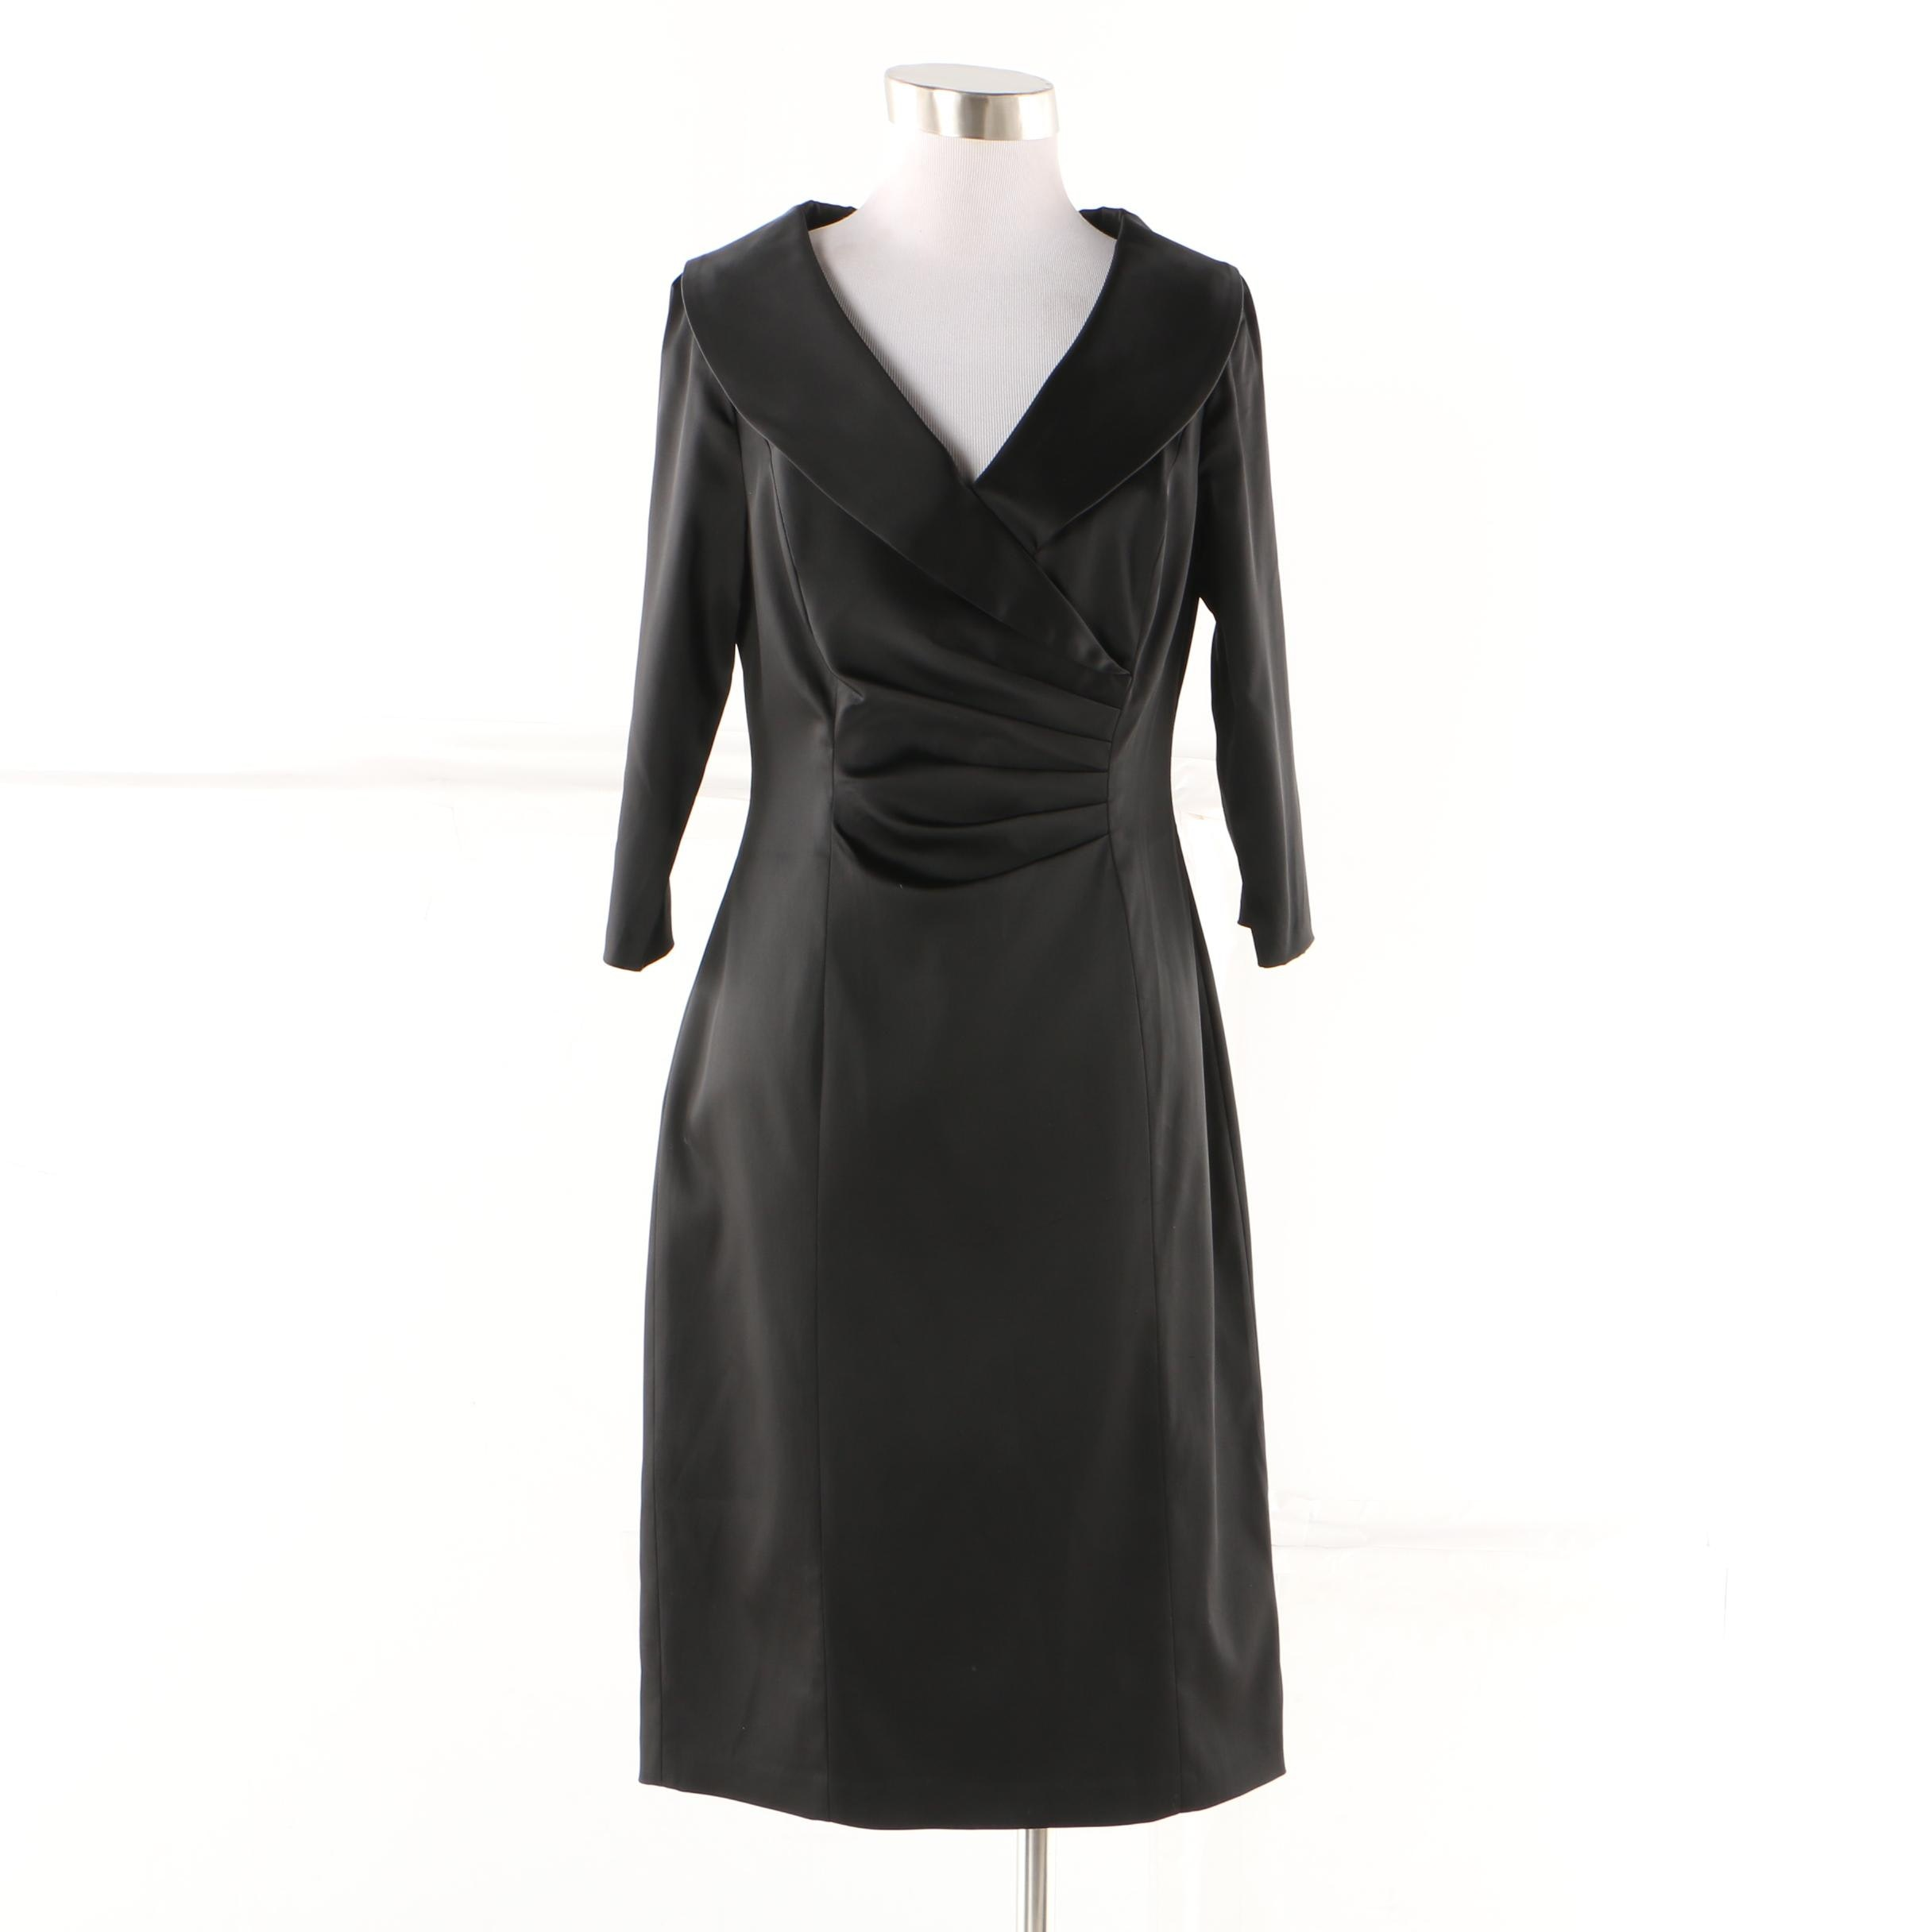 Kay Unger Black Cocktail Dress